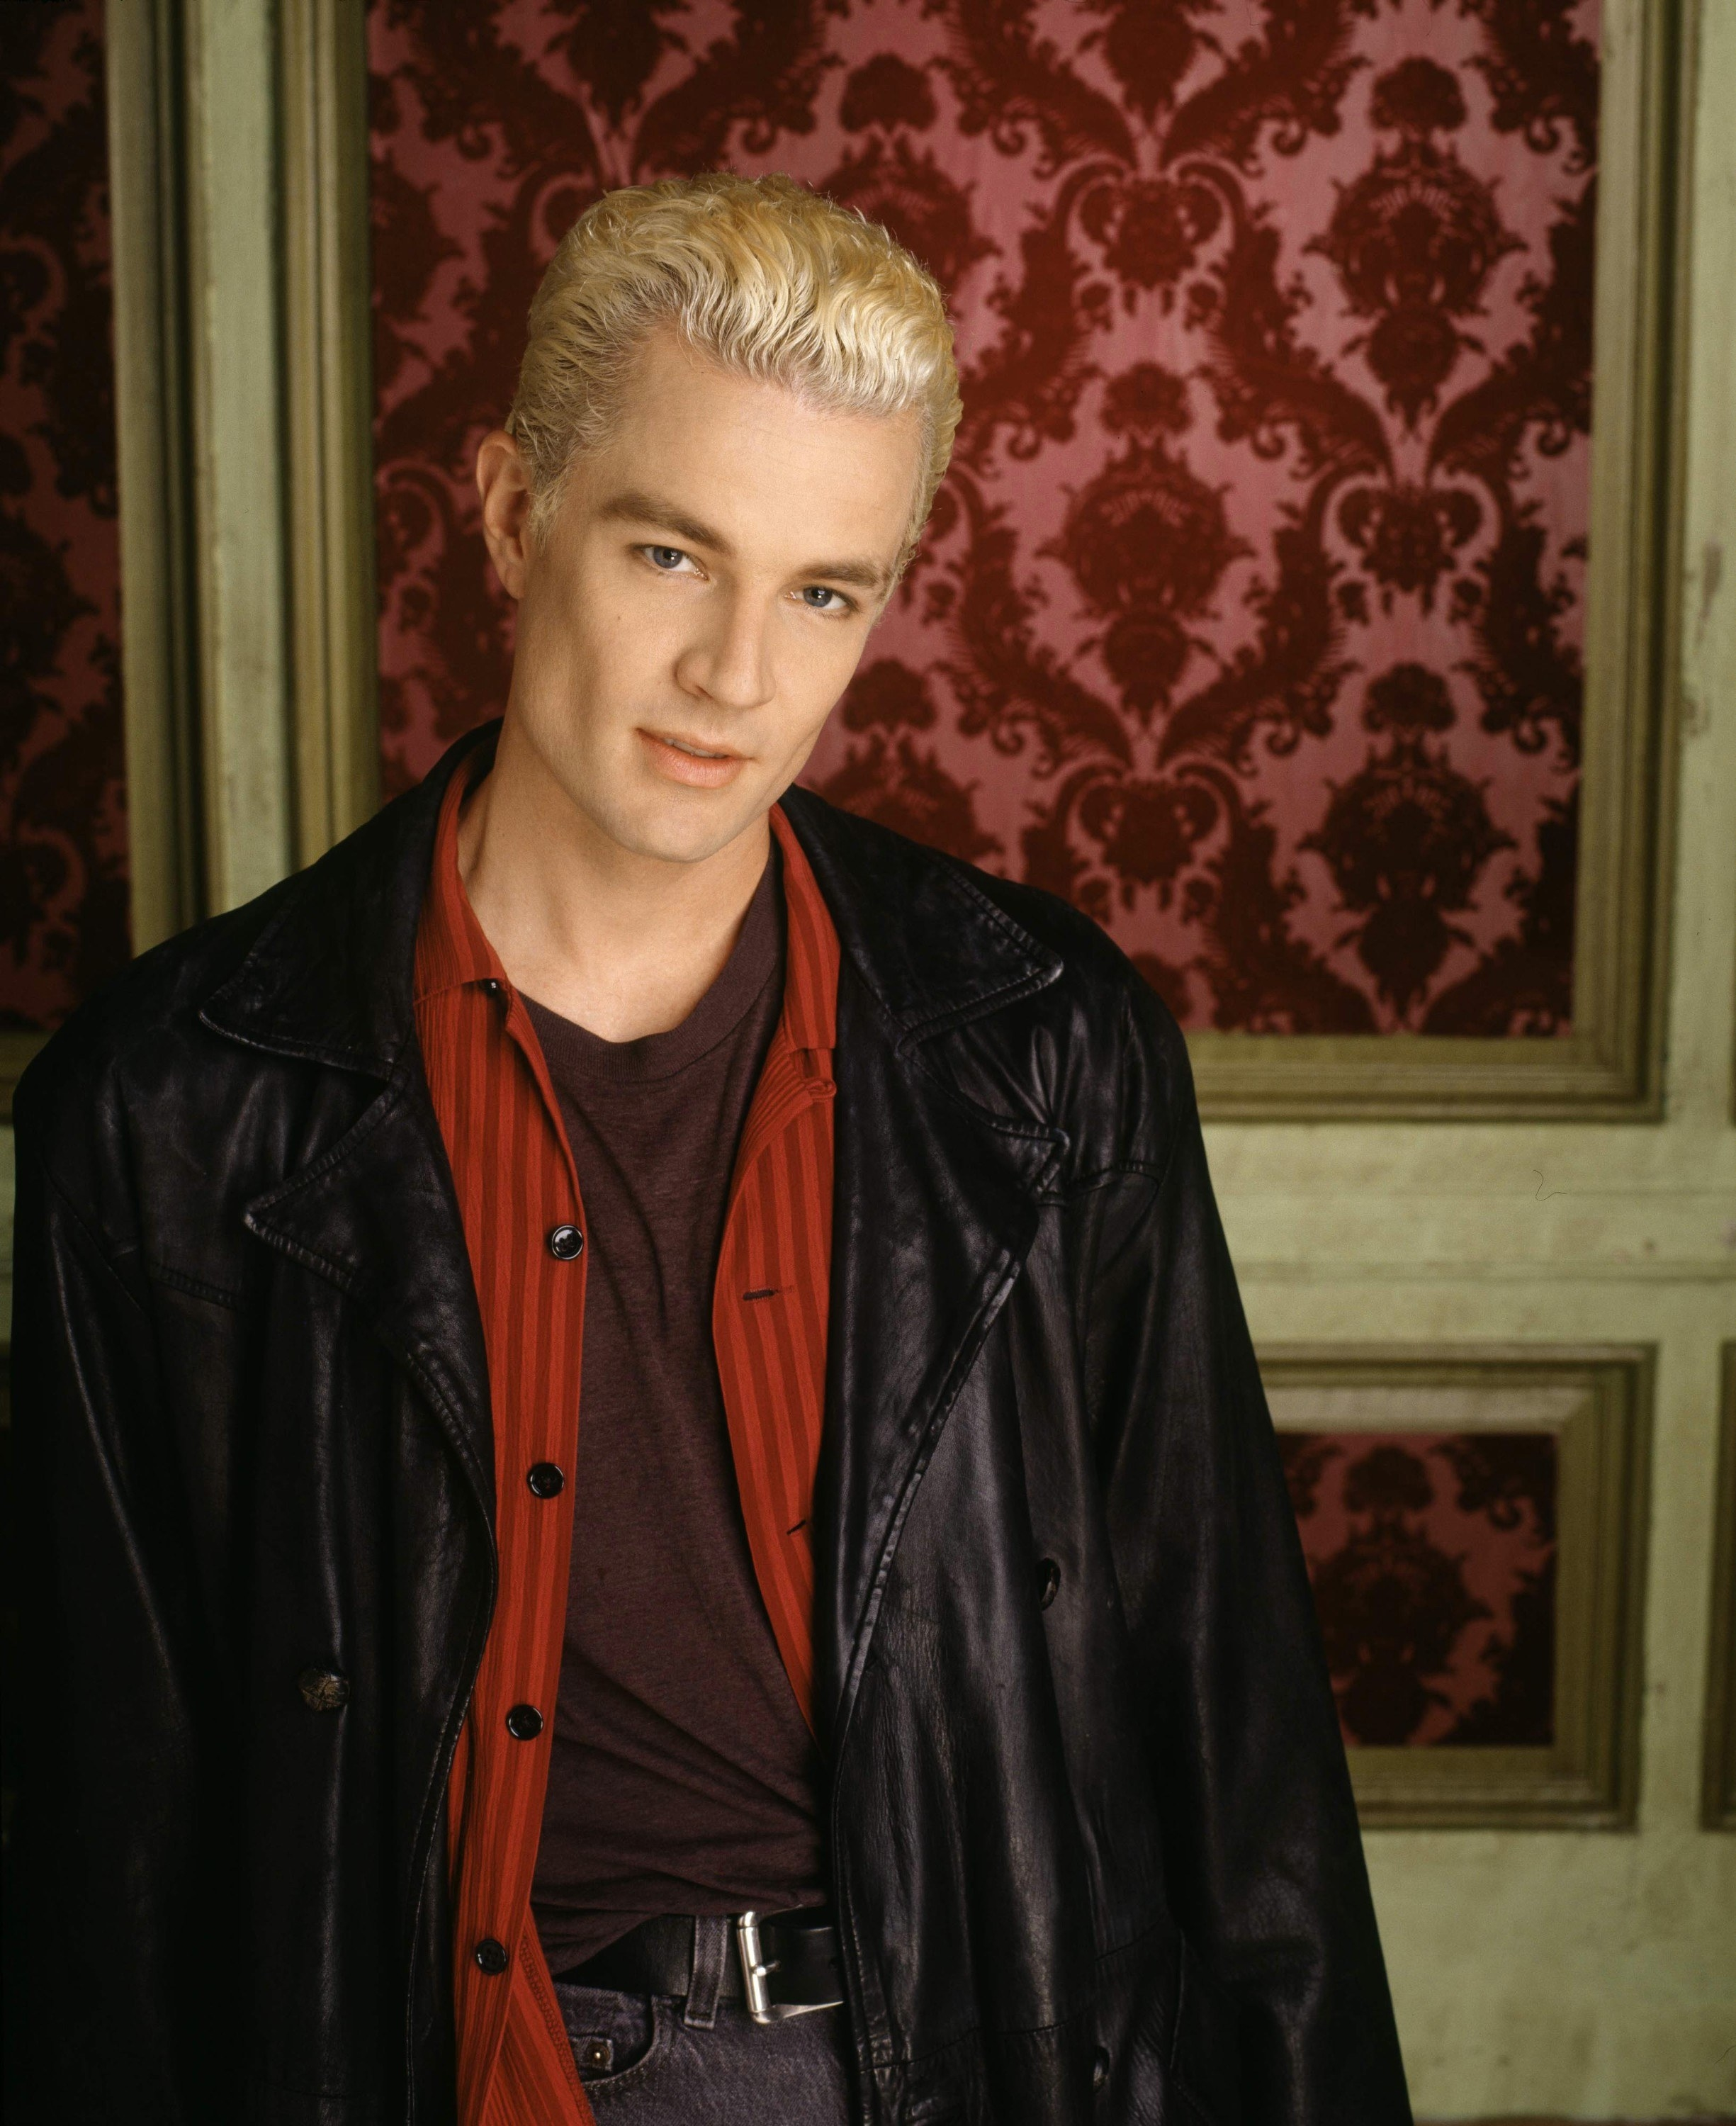 Spike in his leather duster